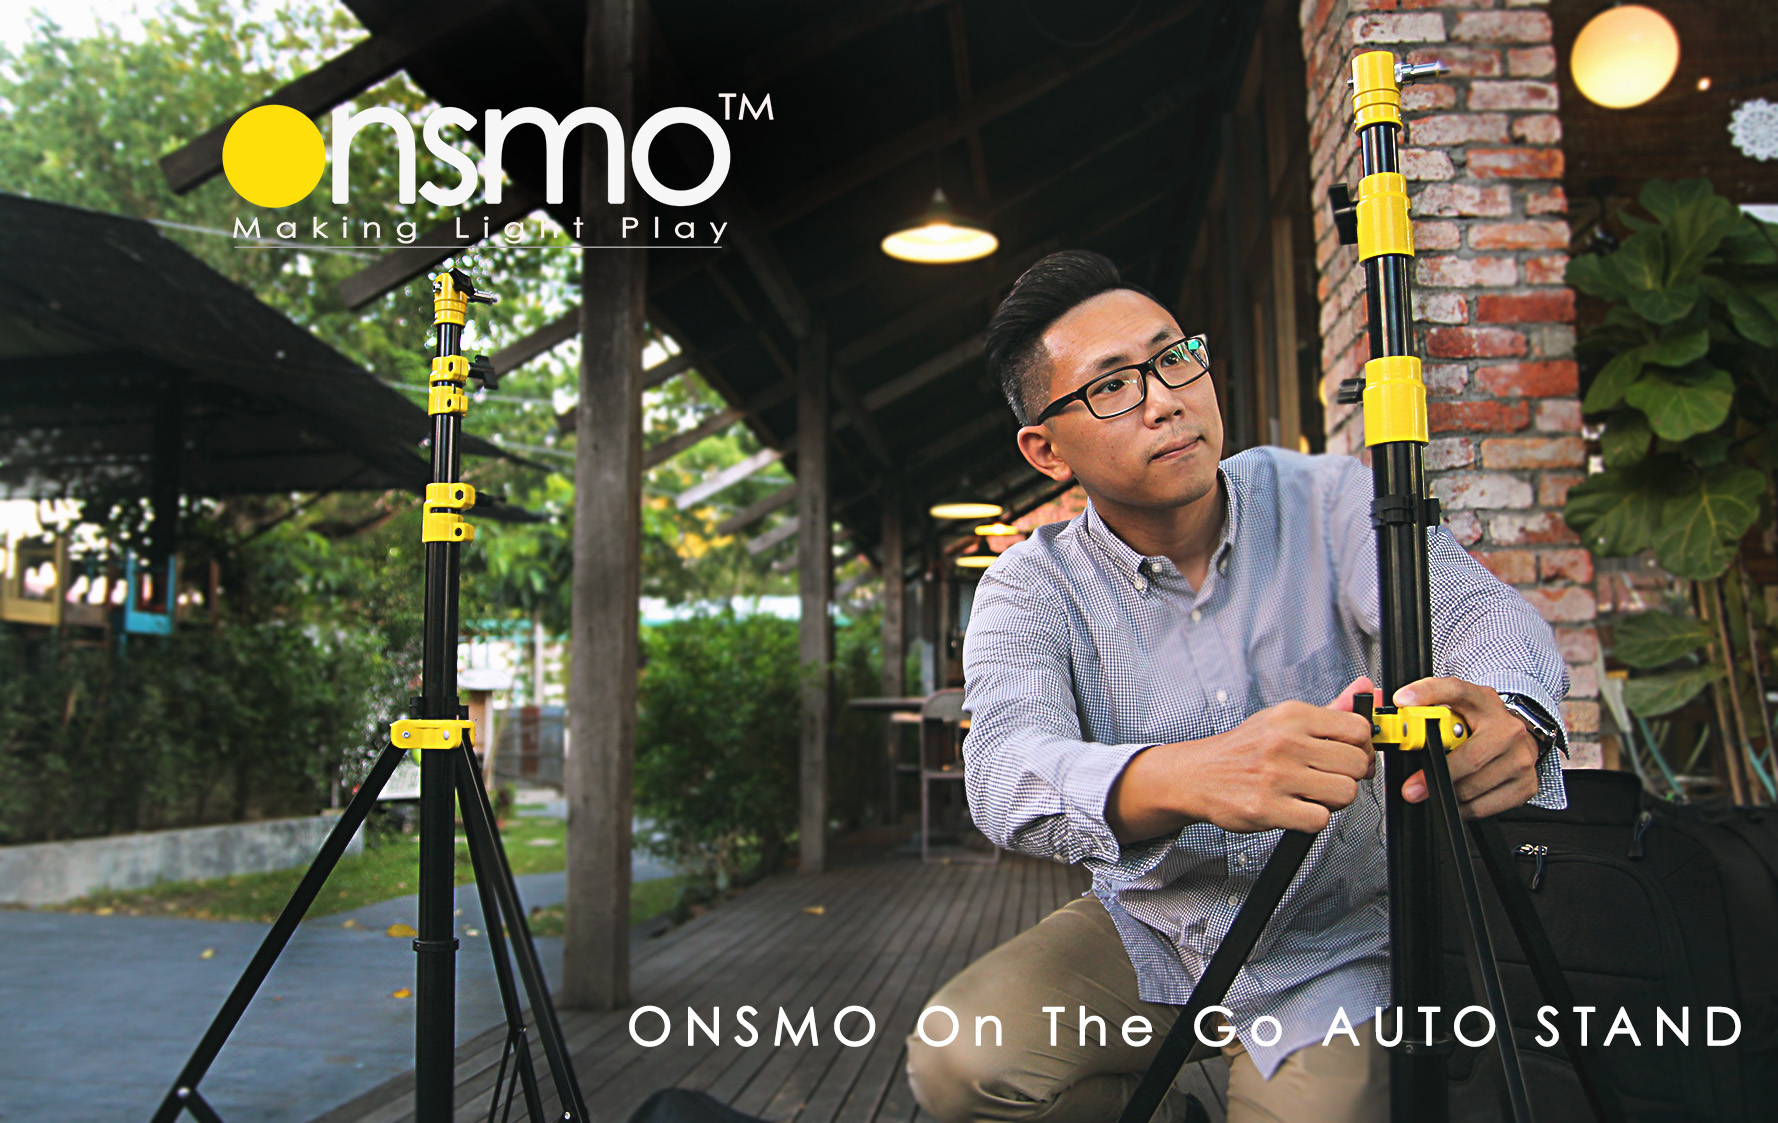 Onsmo On The Go and Travel